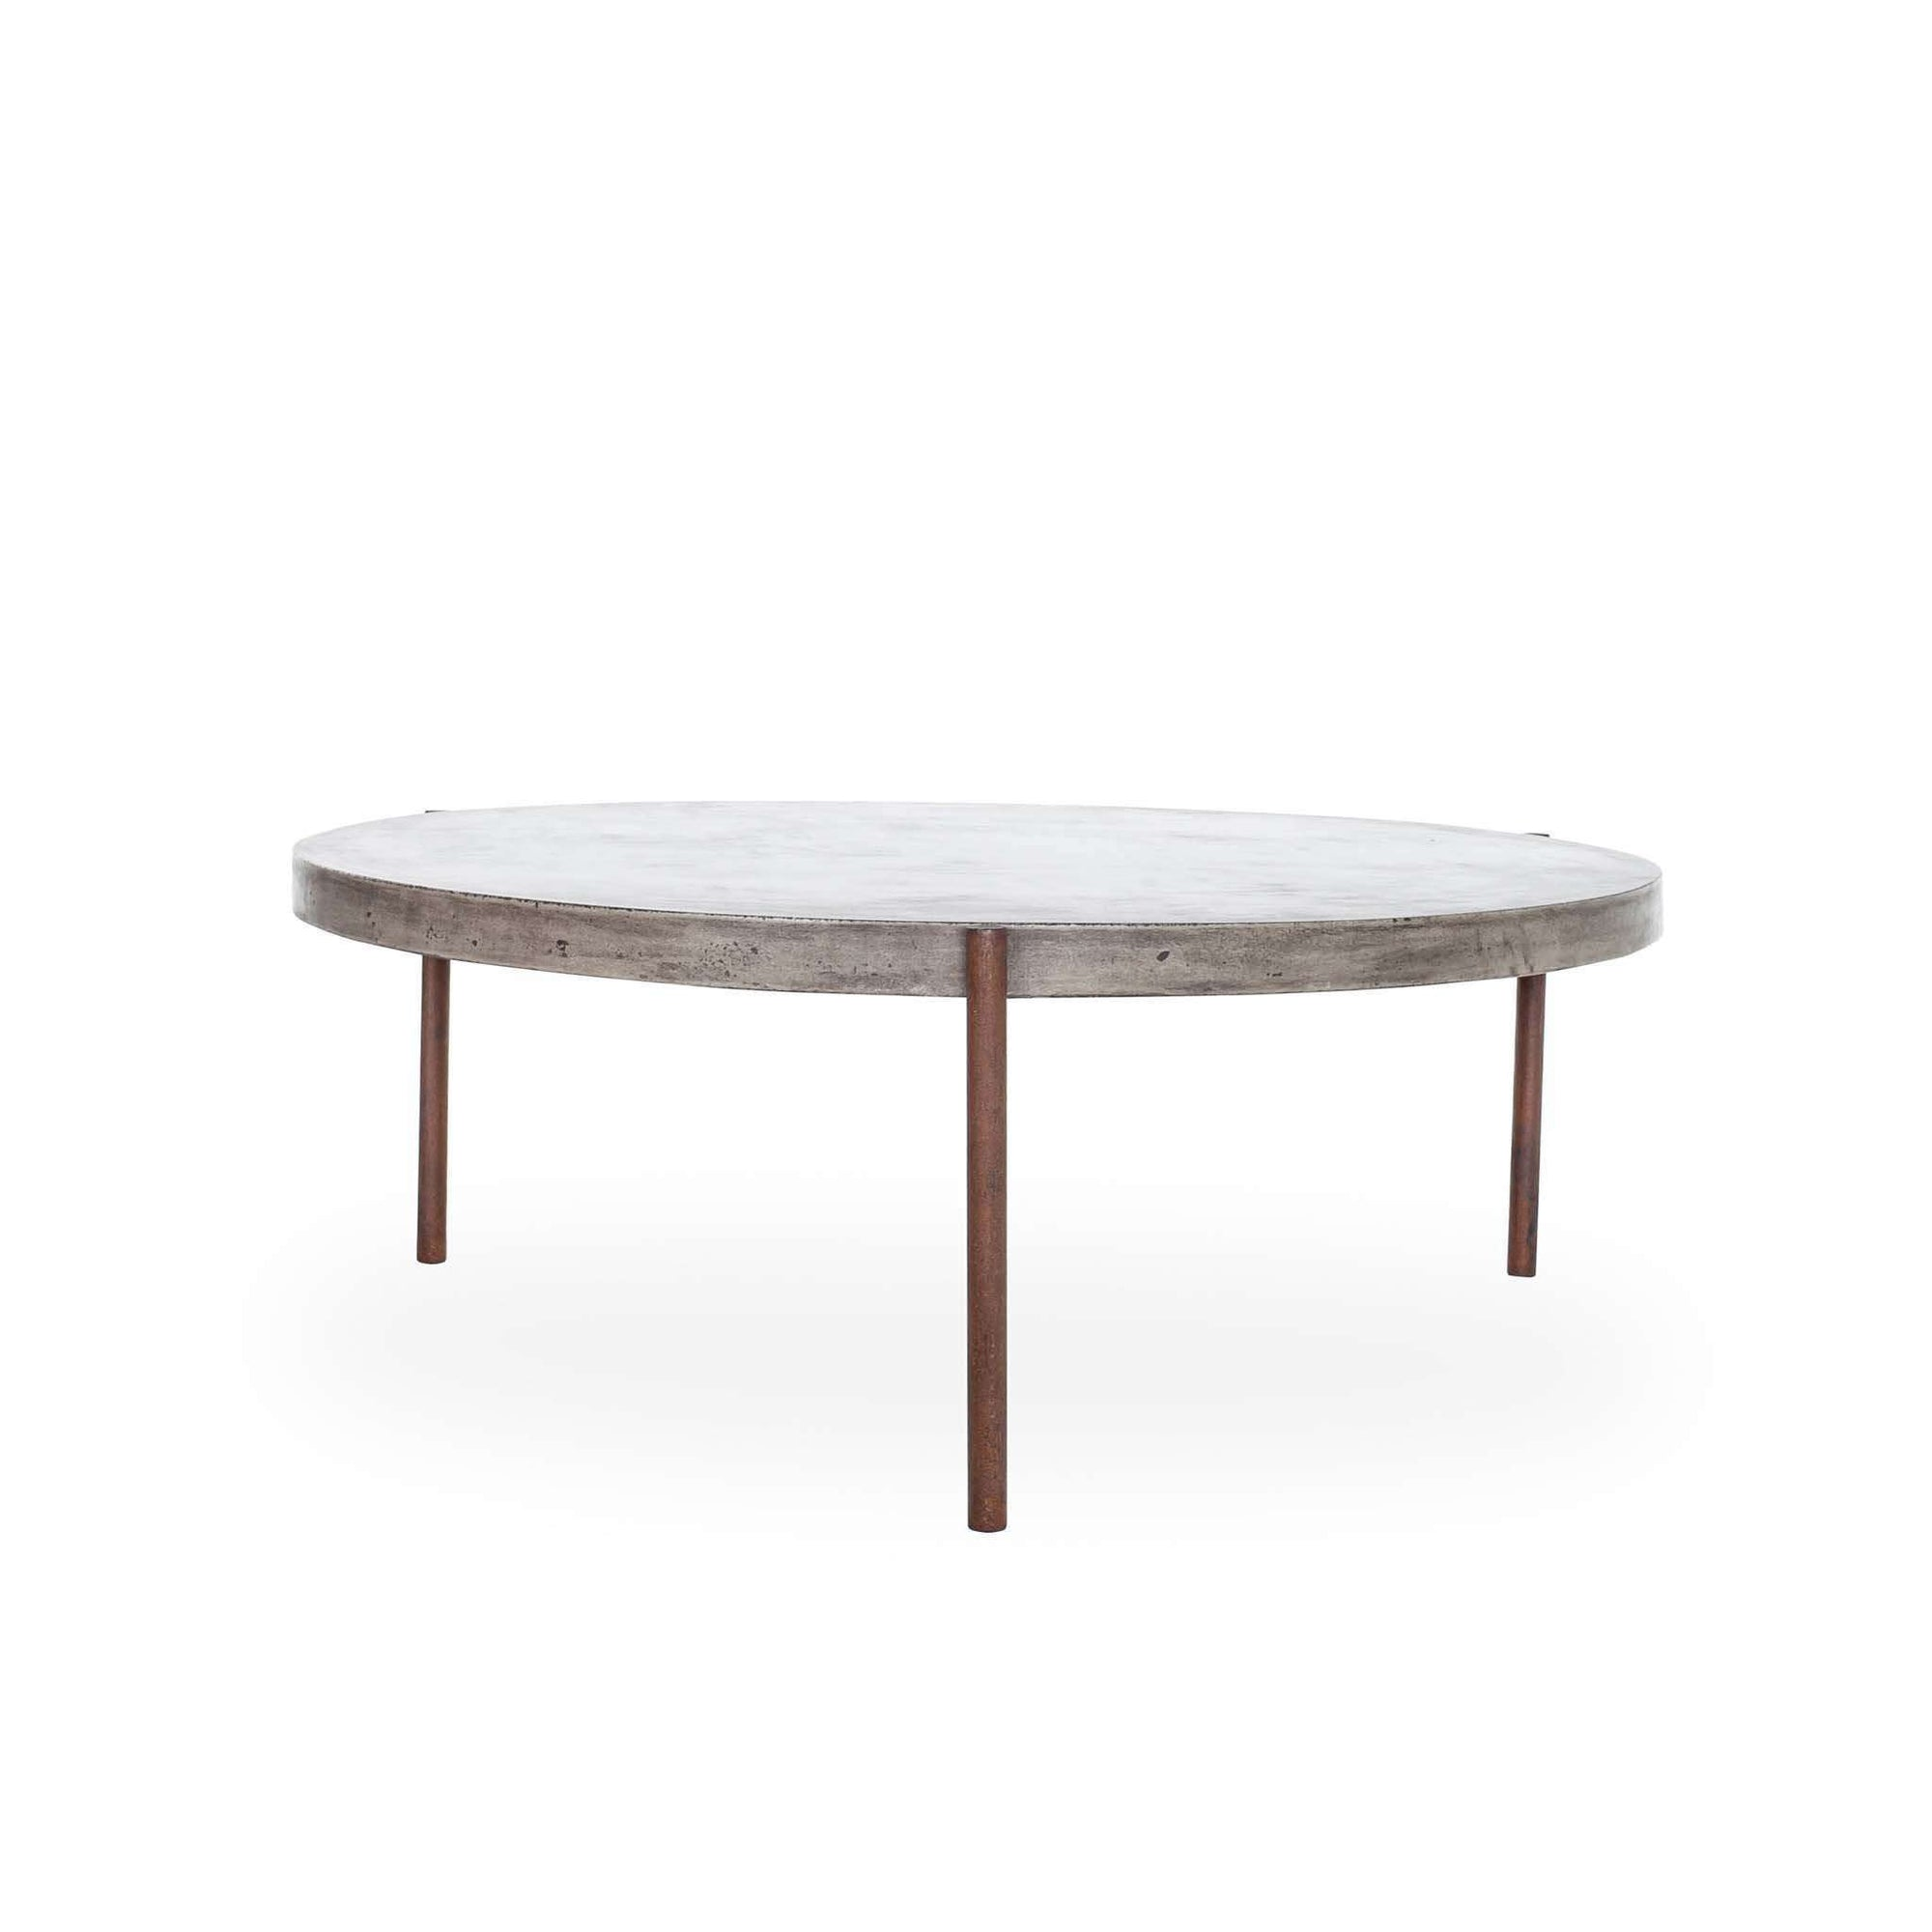 MOES-MENDEZ COFFEE TABLE-Outdoor Coffee Tables-MODTEMPO